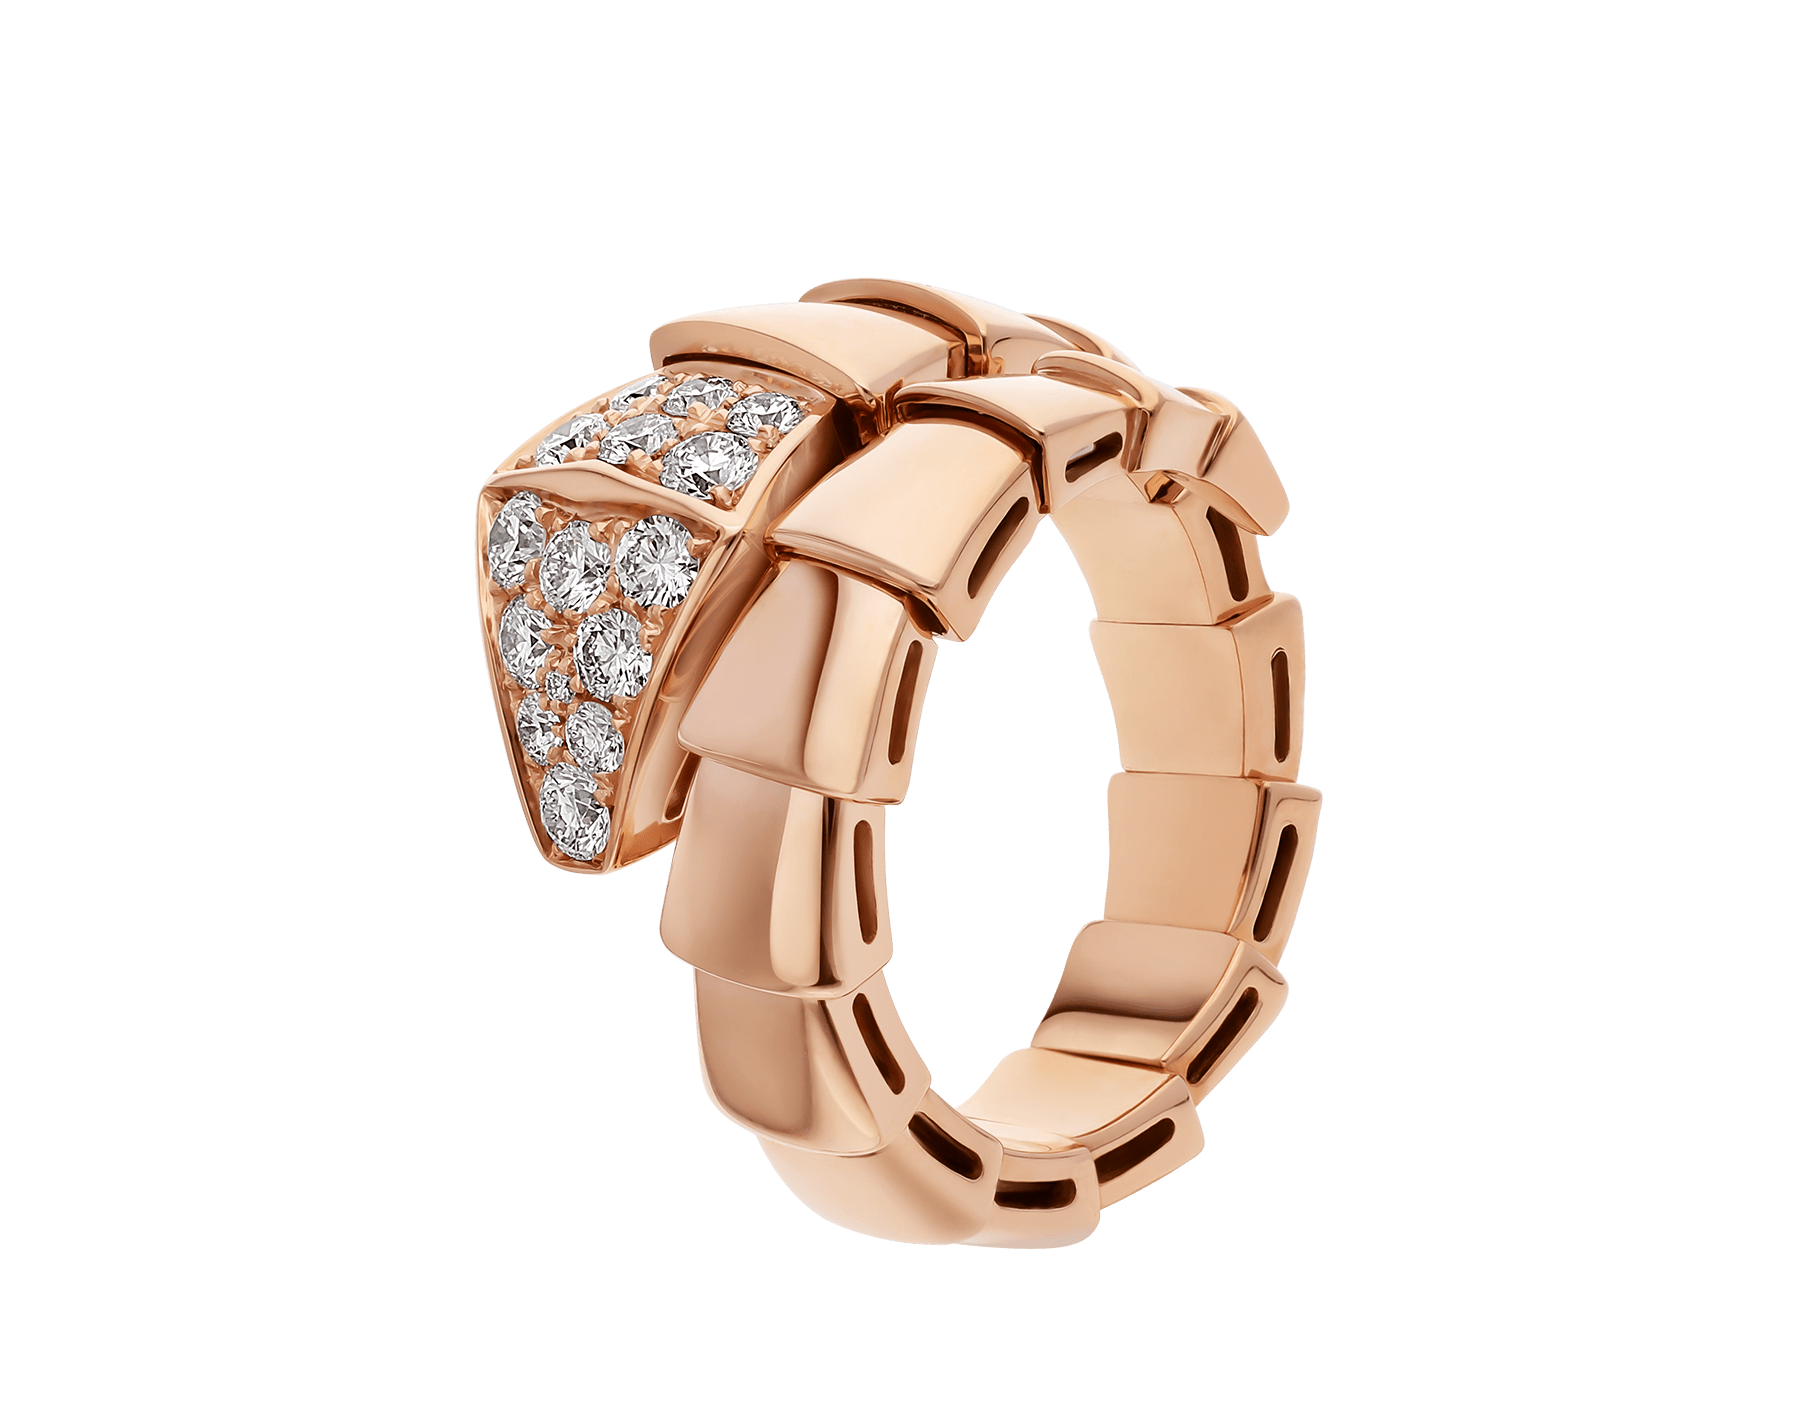 Serpenti Viper one-coil ring in 18 kt rose gold, set with pavé diamonds on the head. AN855318 image 1